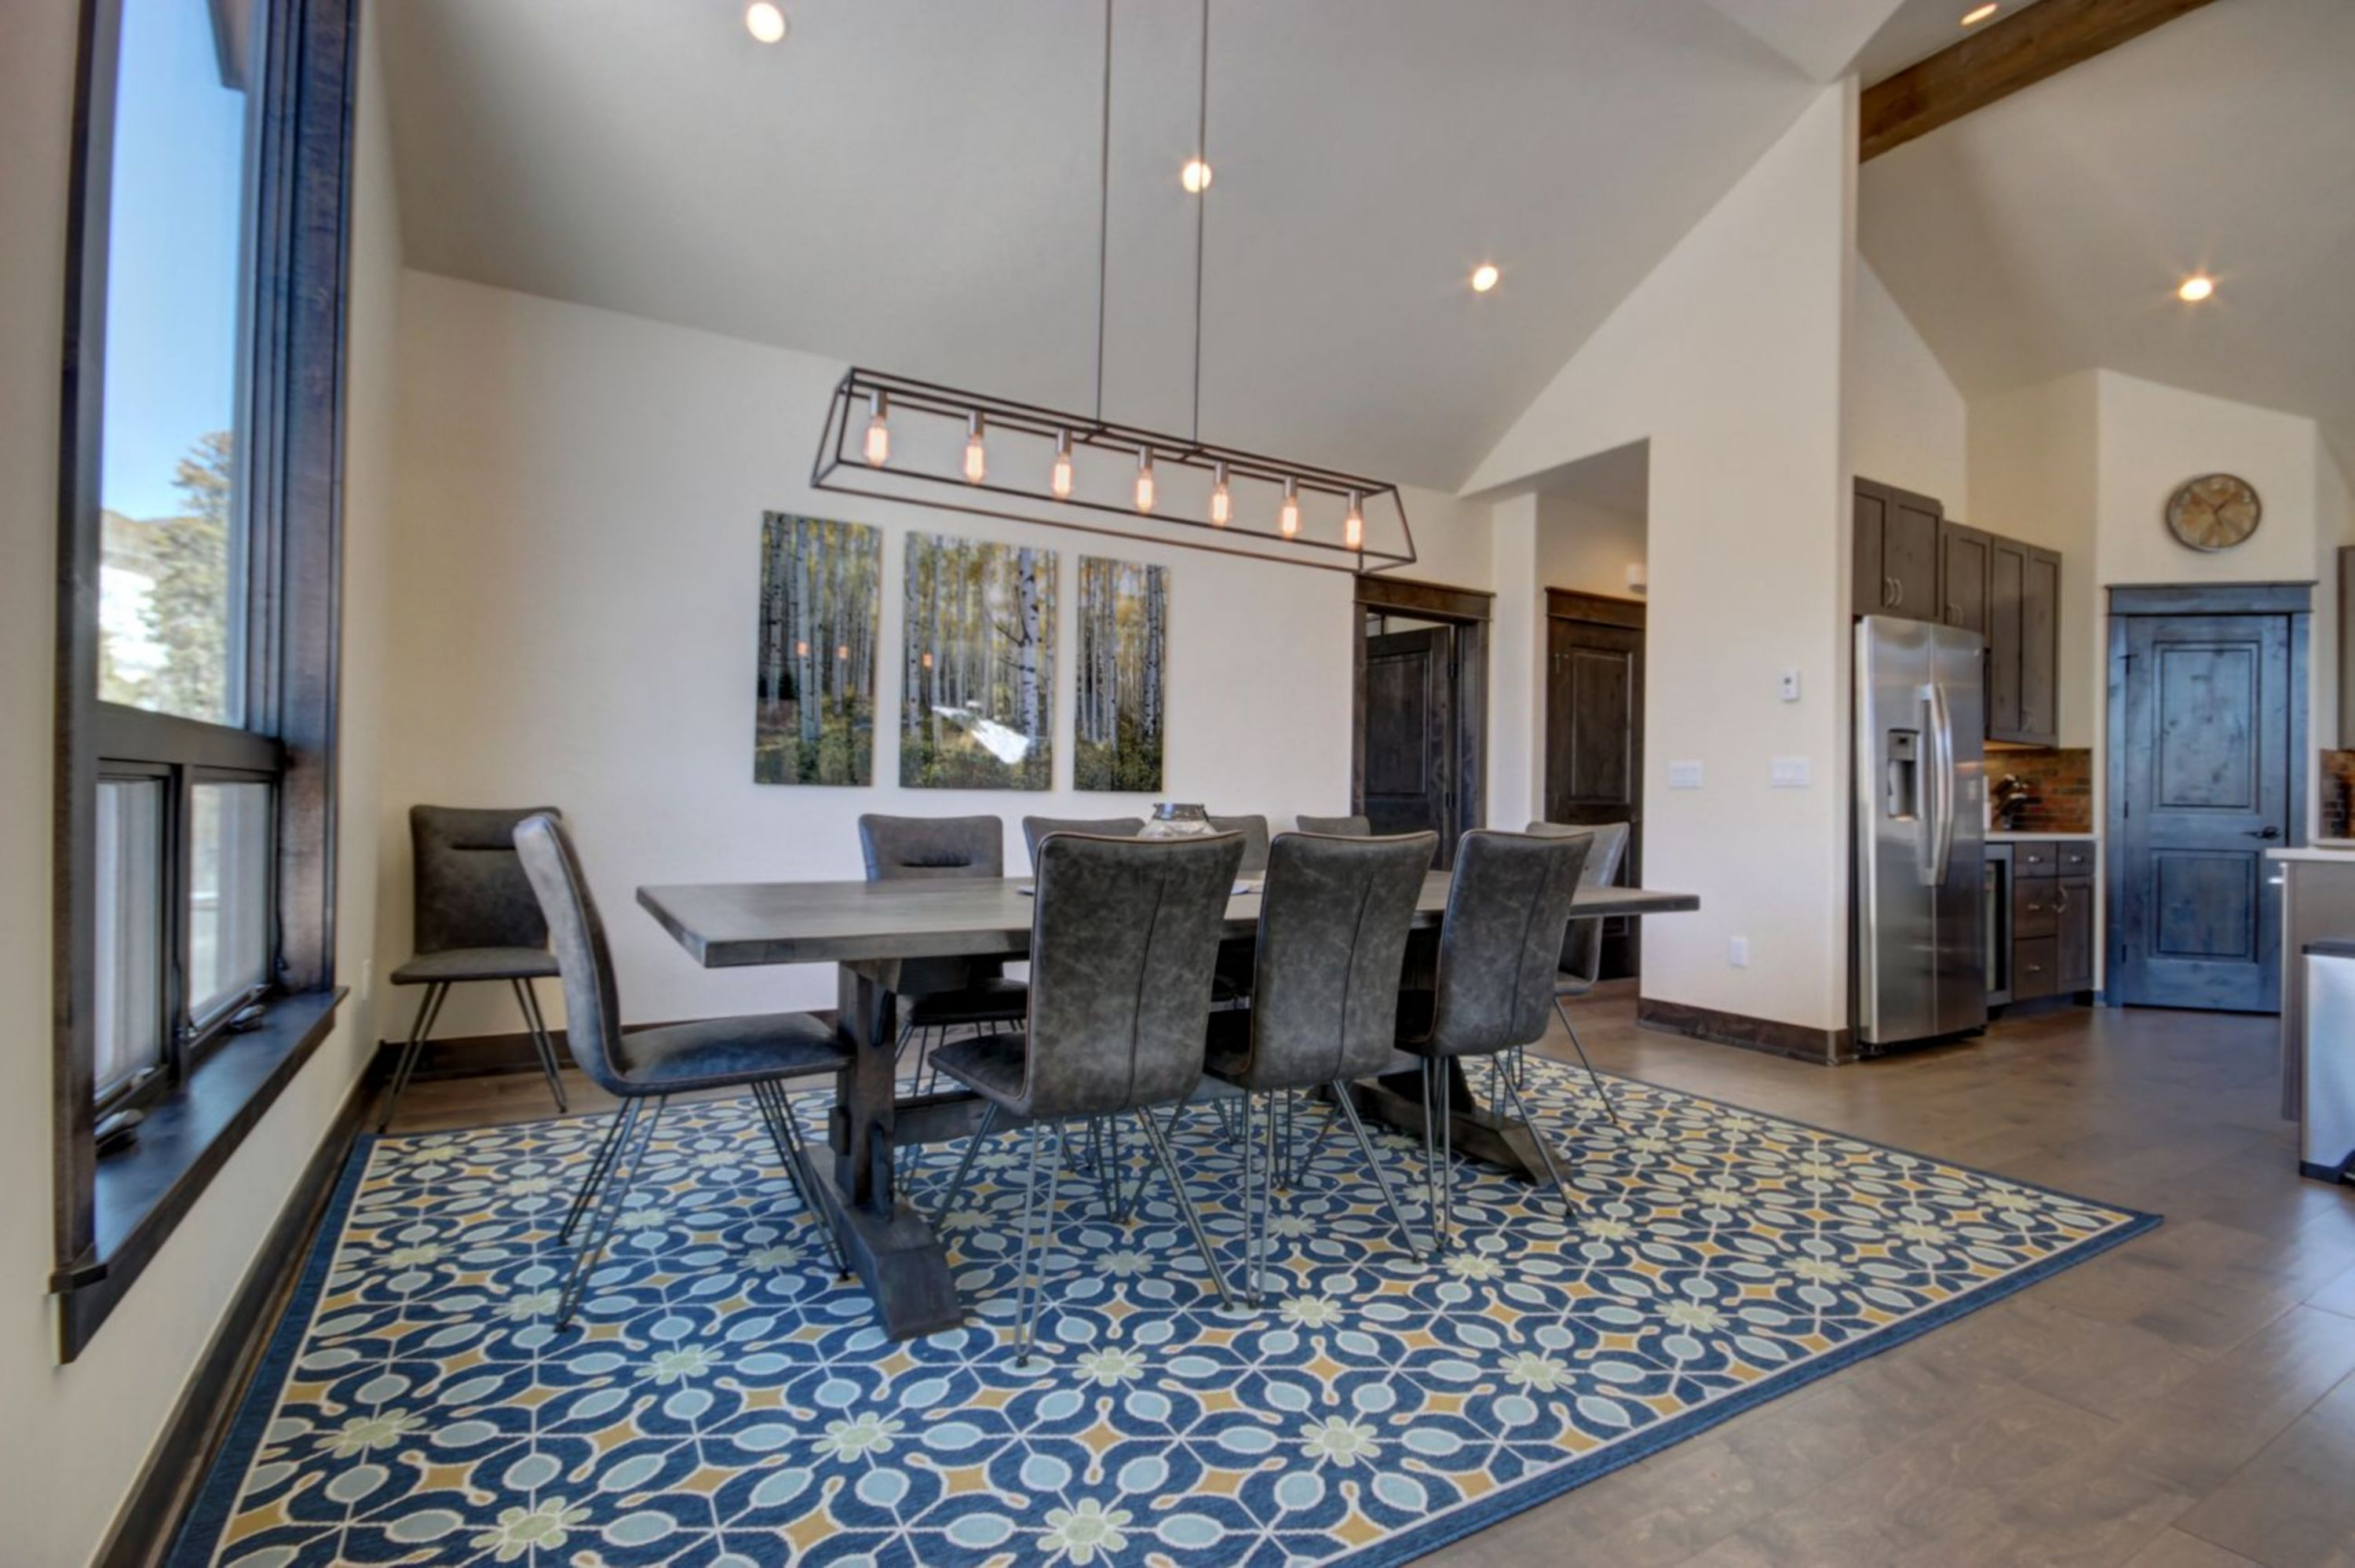 Dining table with colorful carpet